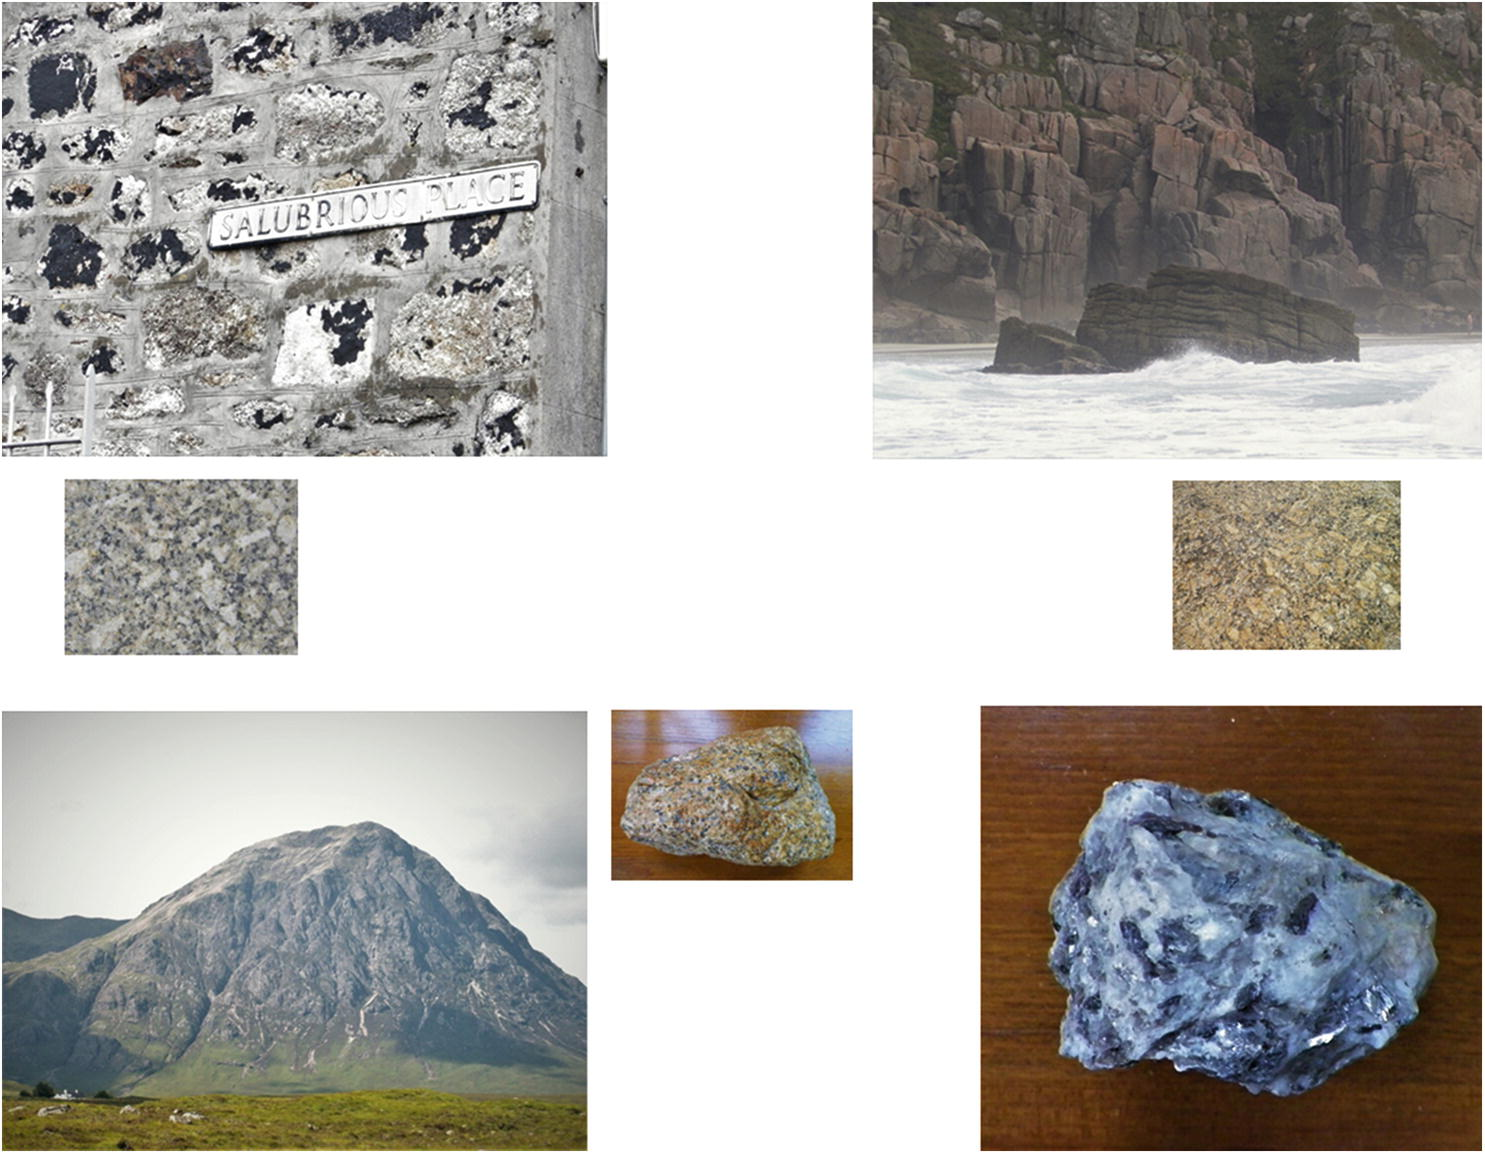 The Formation of Granites & Plate Tectonics | SpringerLink on rock texture concept map, geologic time scale concept map, rock cycle concept map, groundwater concept map, sedimentary rock concept map, geology concept map, gas concept map, vein concept map, types of rocks concept map, quartz concept map, fracture concept map, ion concept map, landform concept map, ionic compound concept map, composition concept map, pangaea concept map, crystal system concept map, magma concept map, pressure concept map, lava concept map,